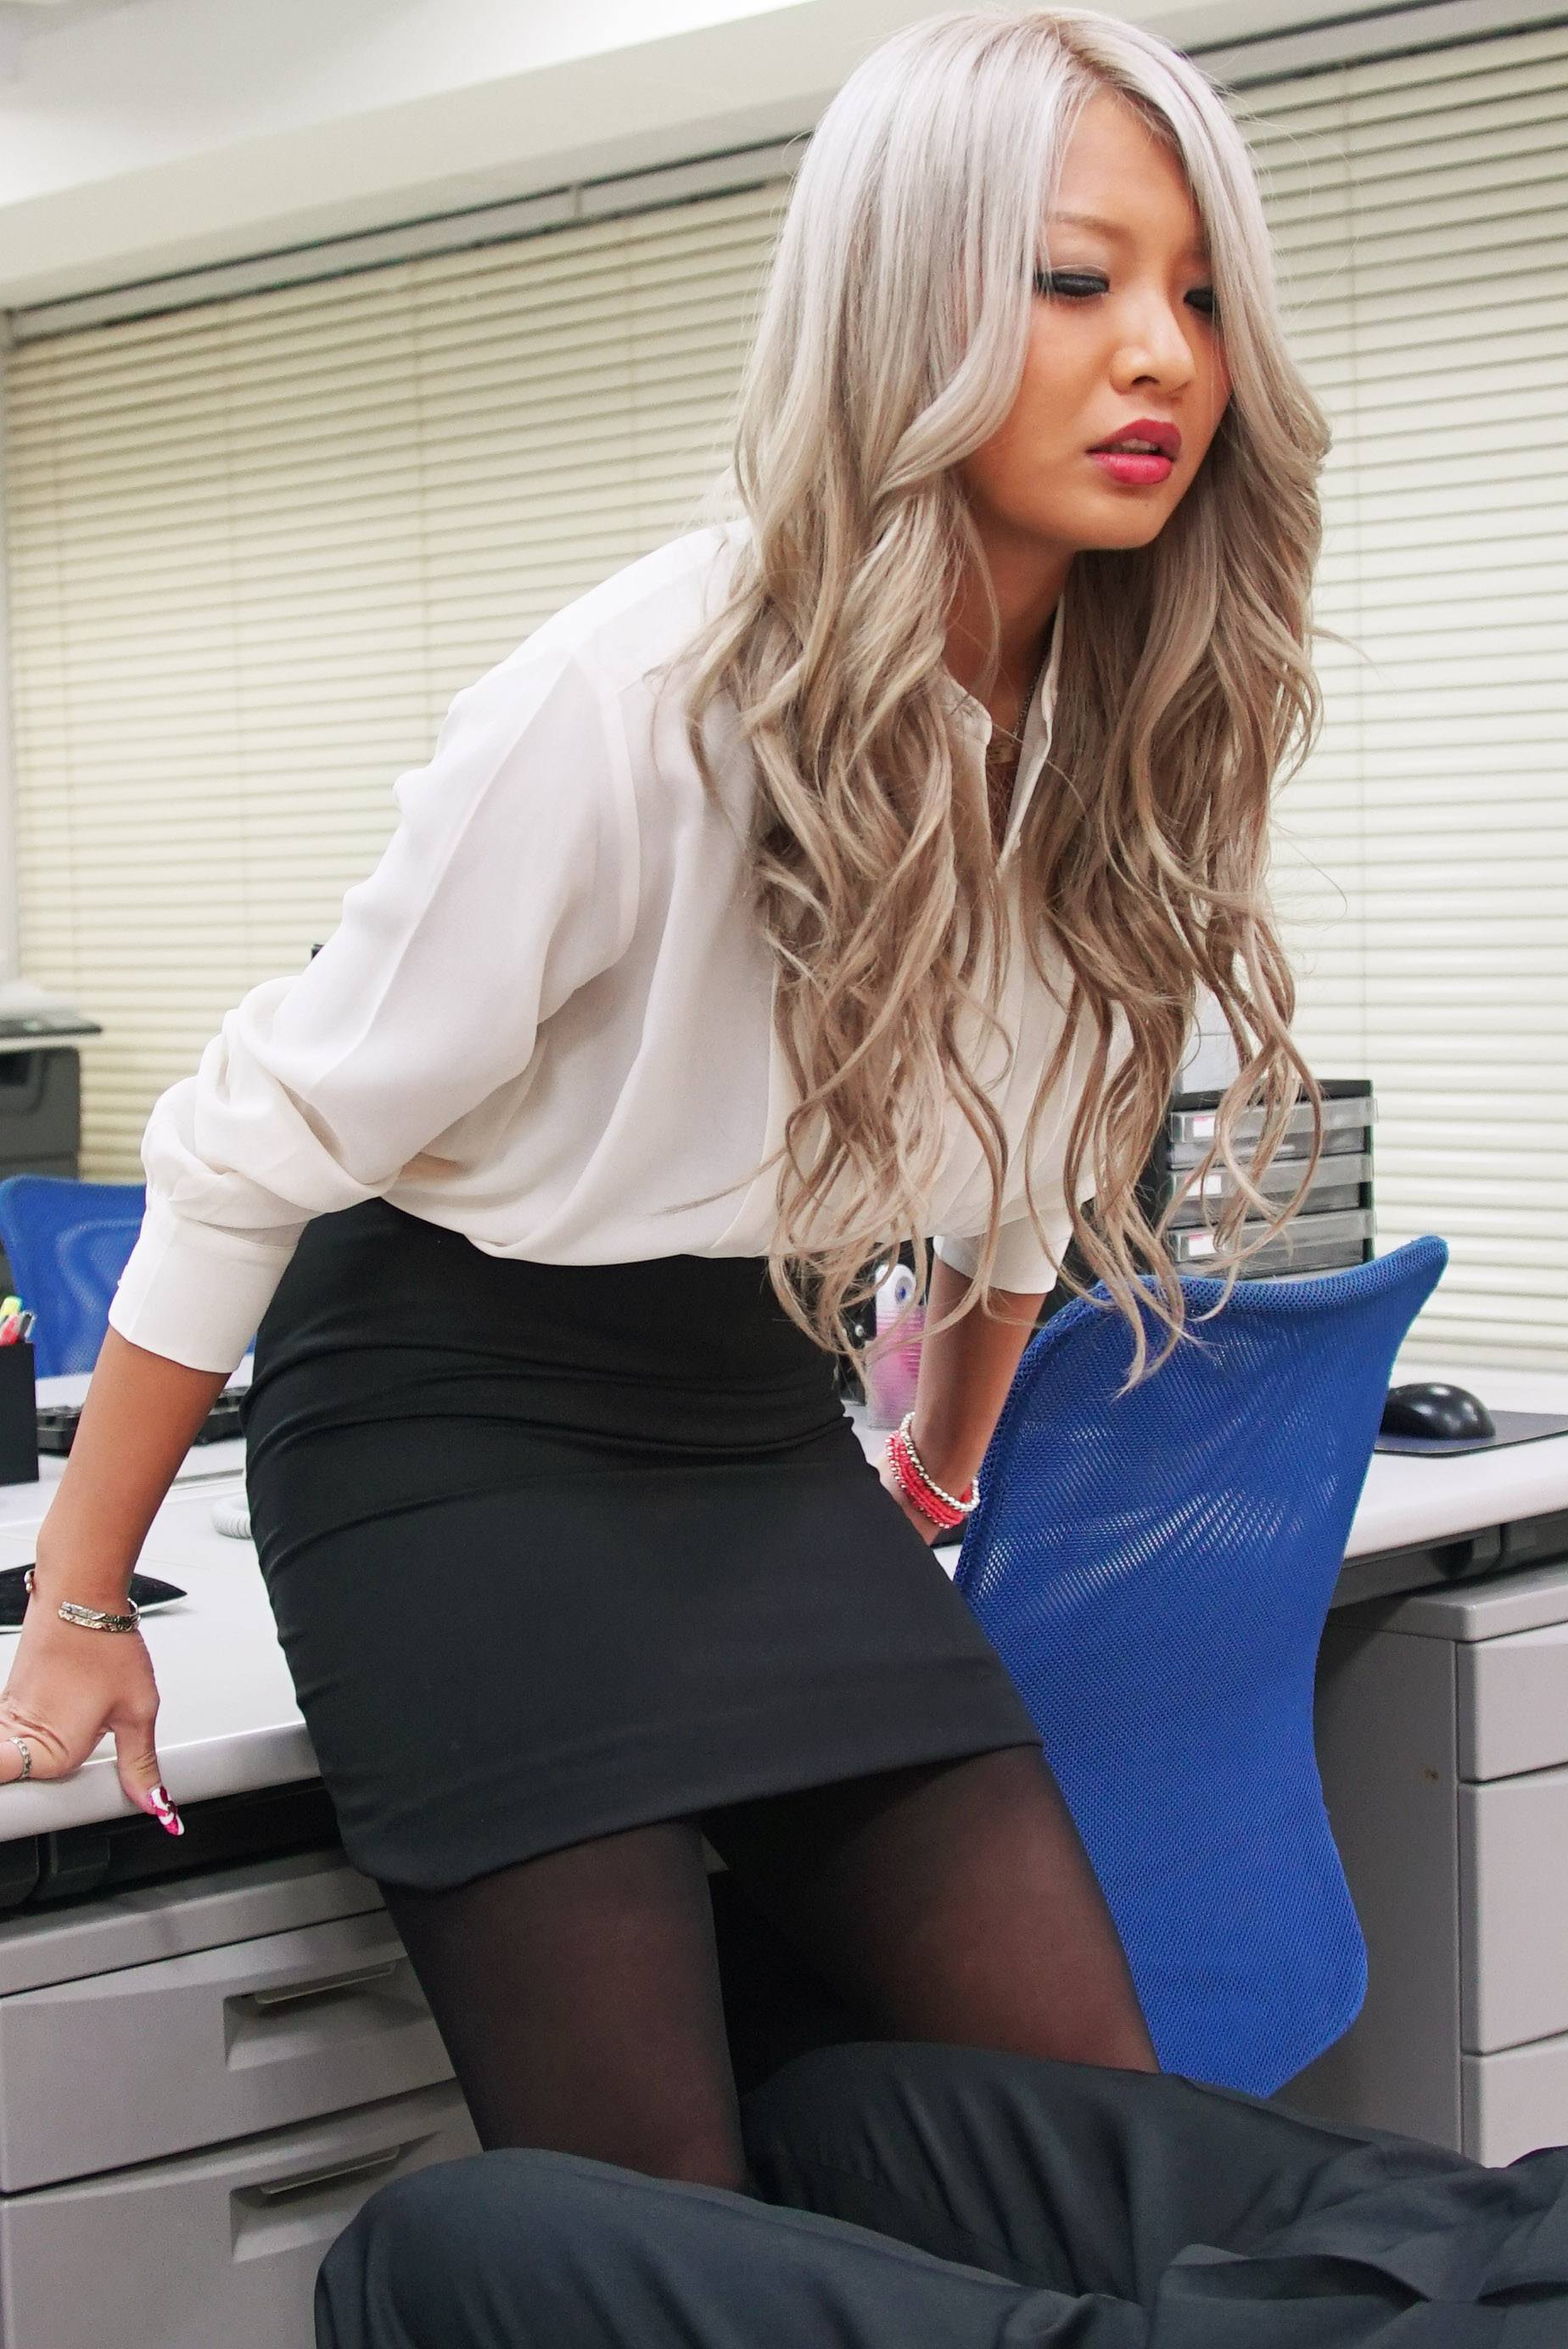 image The new method of release working pressure for office lady